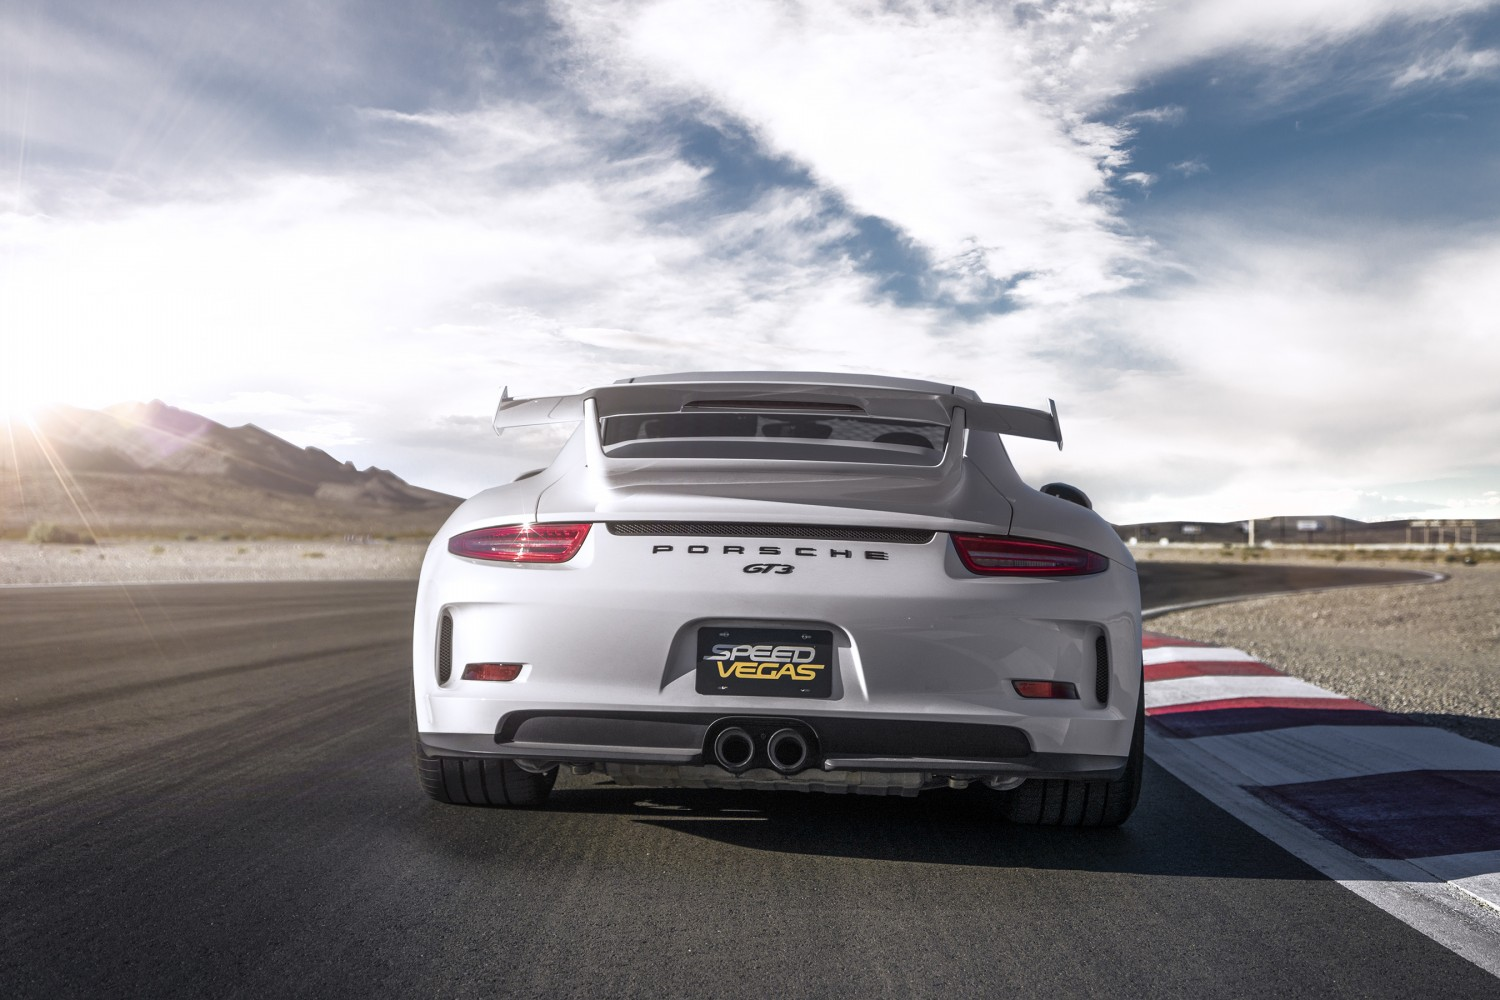 Drive A Porsche On Track In Vegas Speedvegas